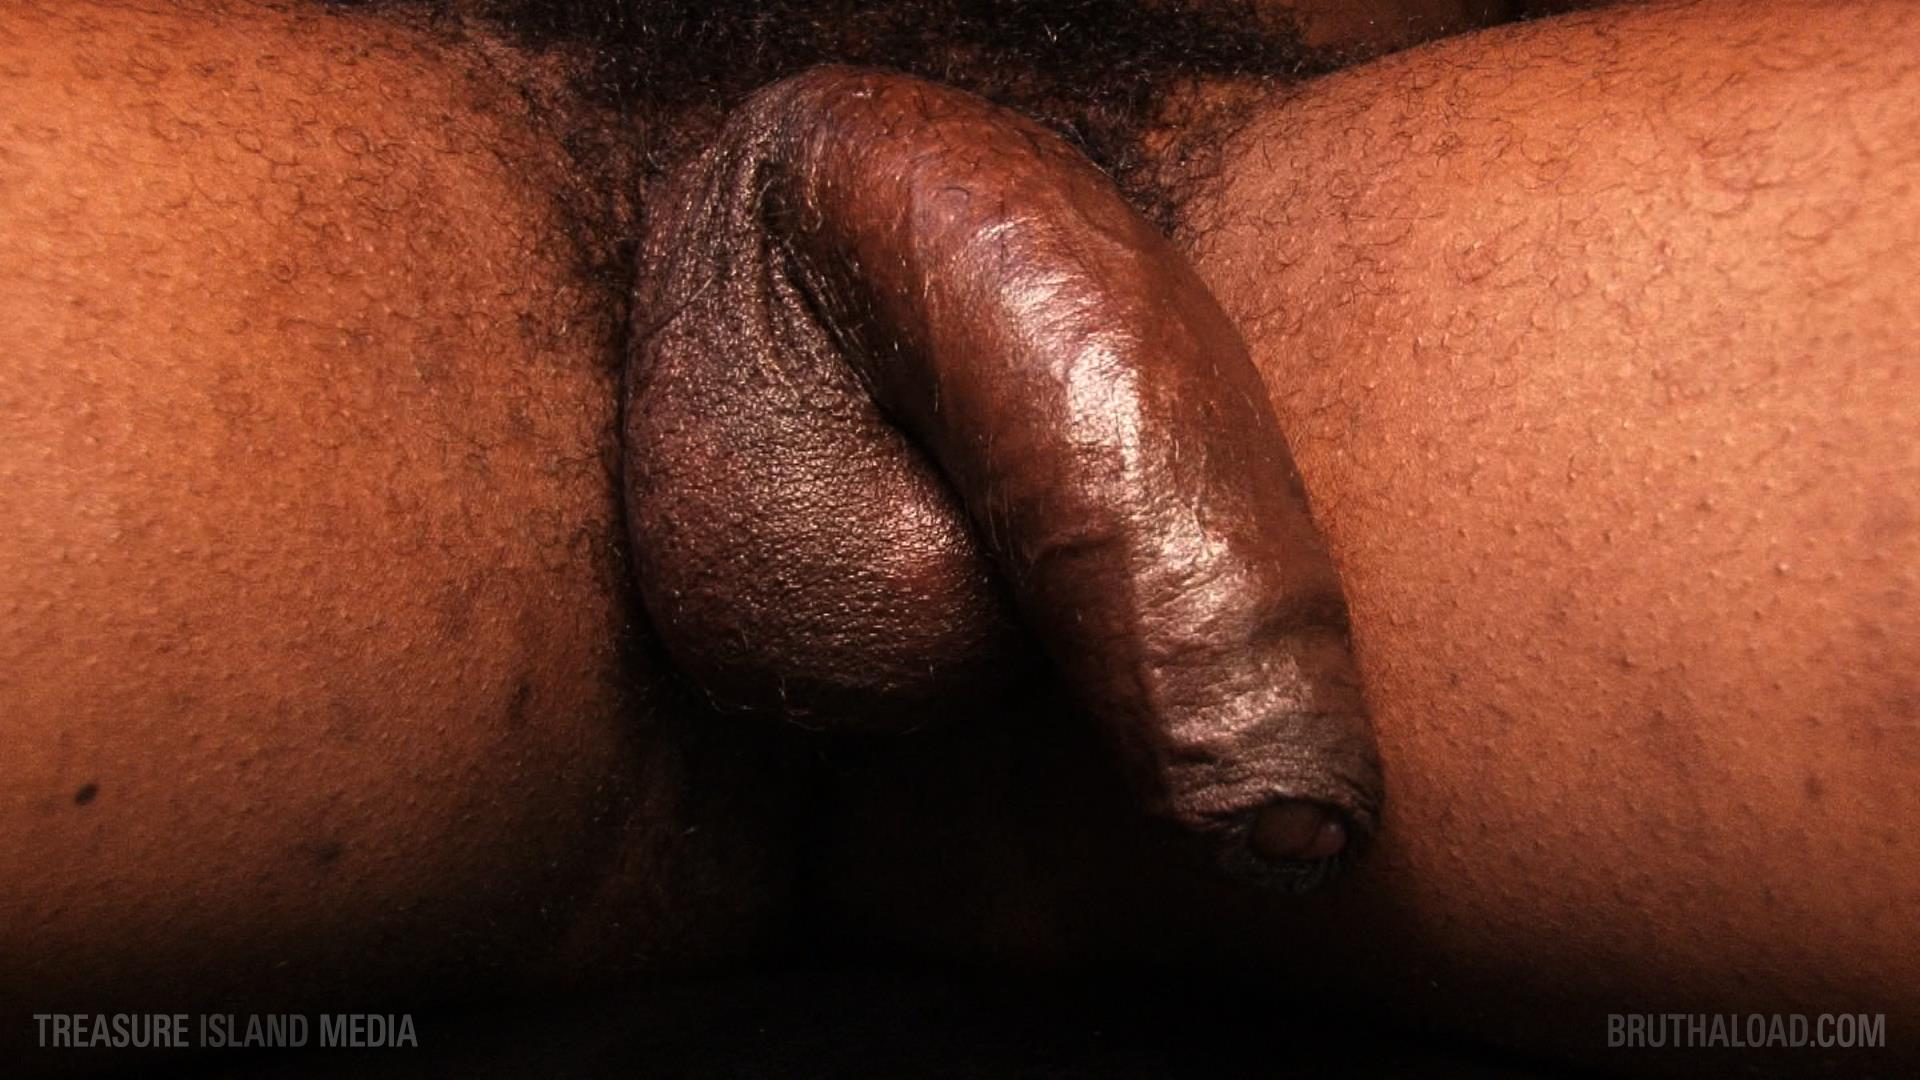 Treasure-Island-Media-Bruthaload-Devin-Masters-Big-Black-Uncut-Cock-26 Treasure Island Media's Bruthaload: Devin Masters Edging His Big Black Uncut Cock